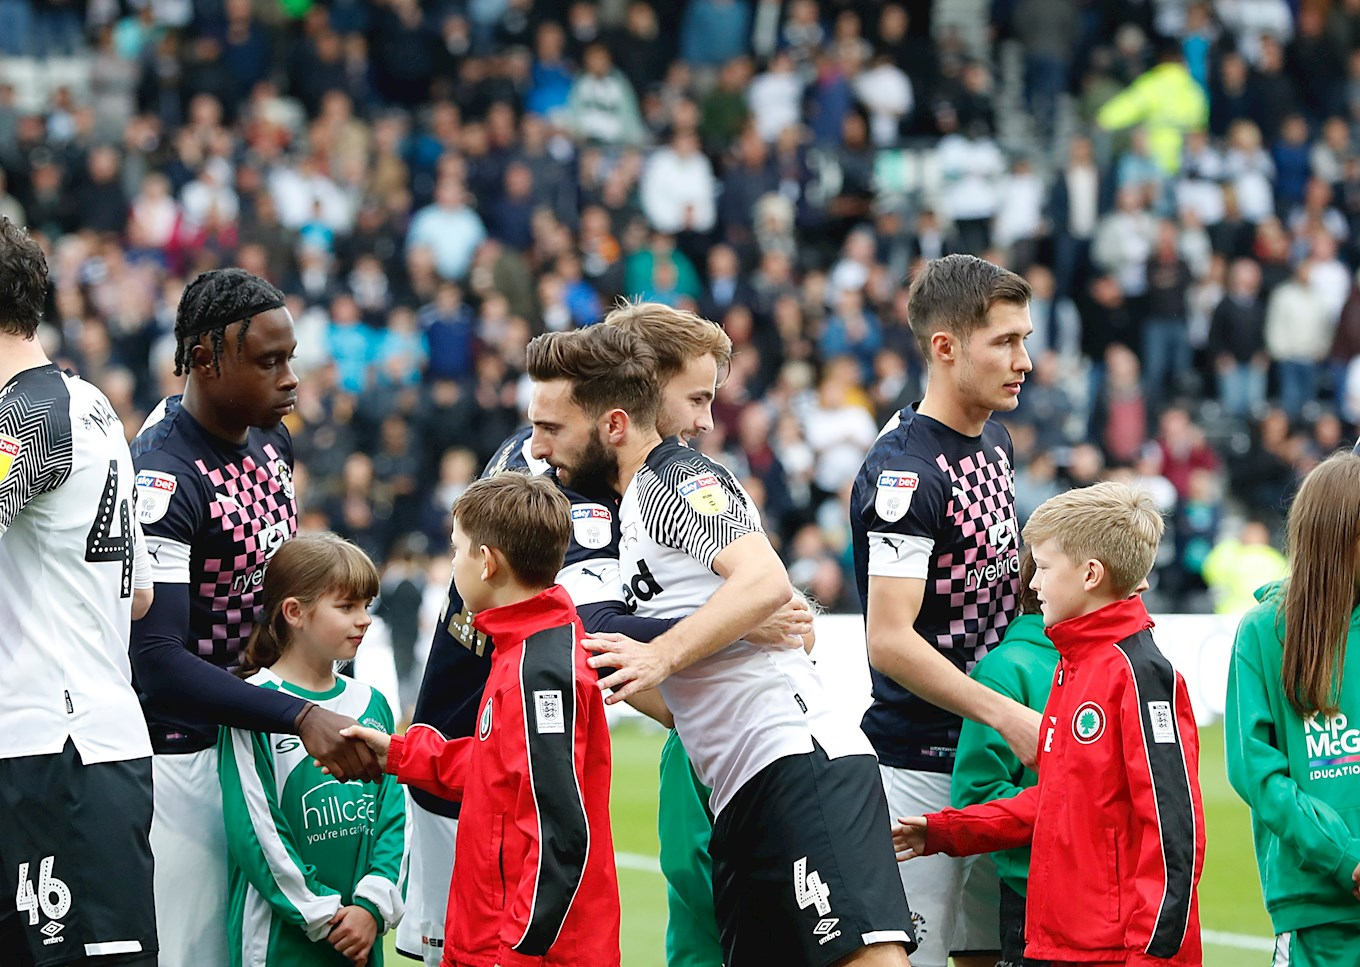 The Shinnie brothers embrace during the pre-match handshakes at Pride Park